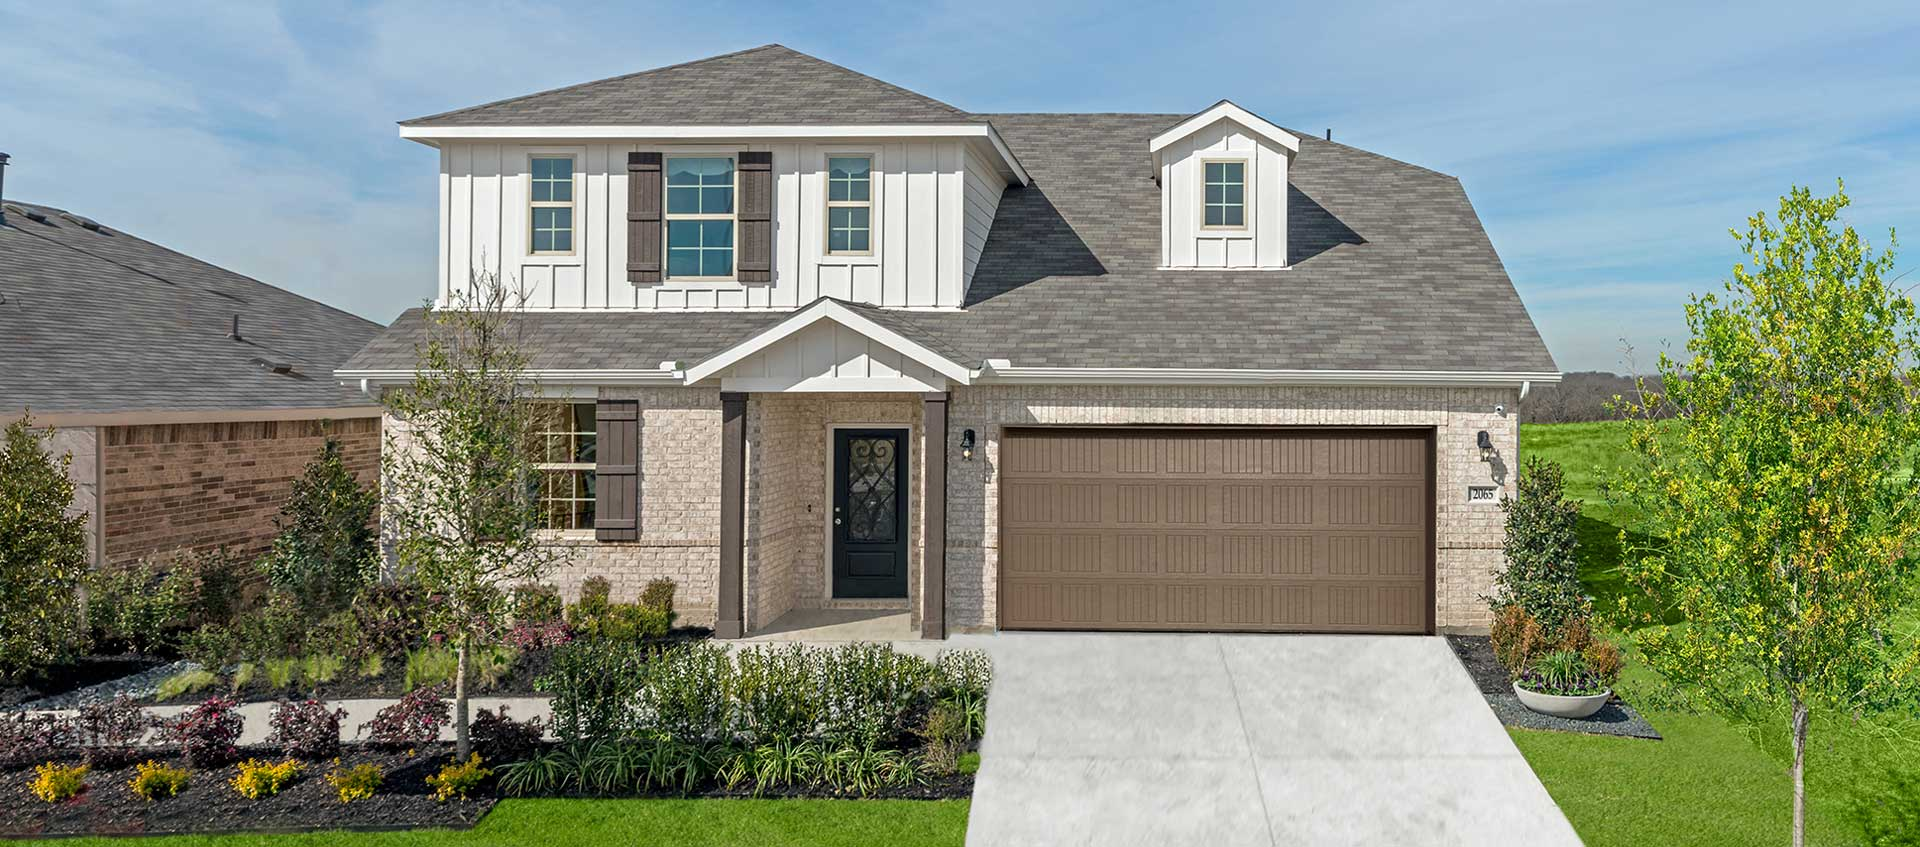 Beazer Homes Two-story brick home at Wildcat Ranch Crandall Texas